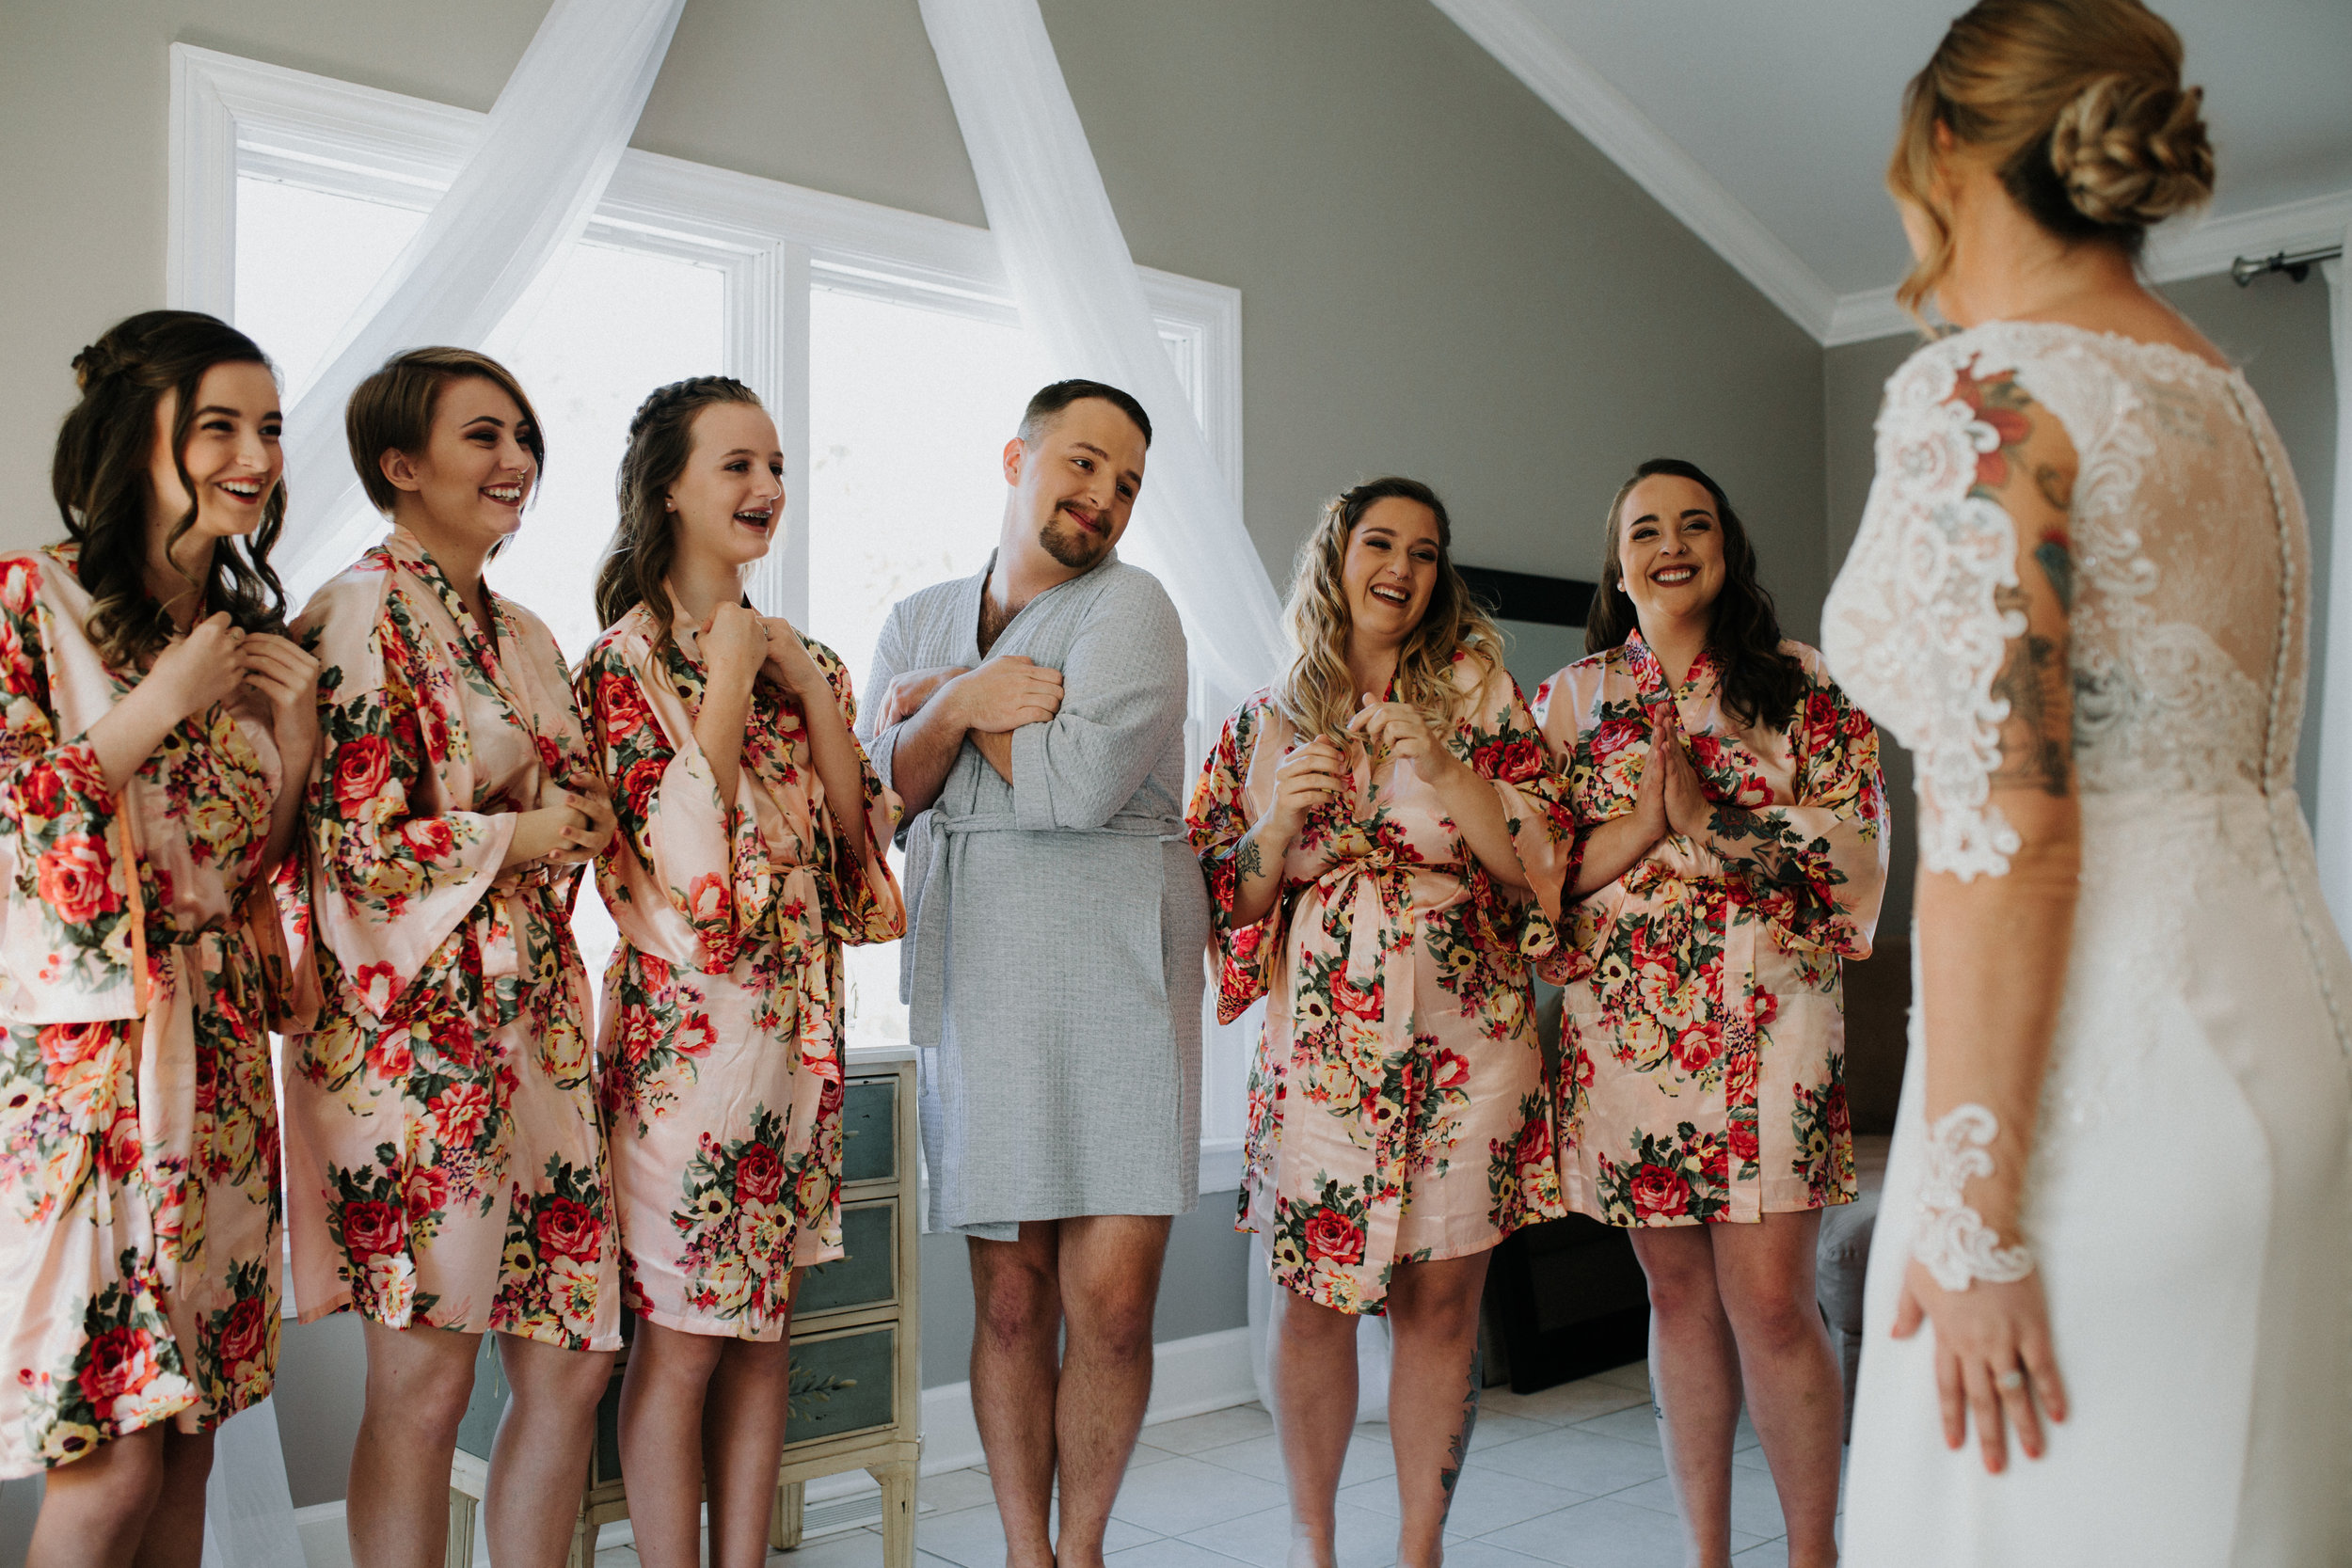 Bridesmaid First Look at Bride - Dara's Garden Knoxville East Tennessee Wedding — The Overwhelmed Bride Wedding Blog